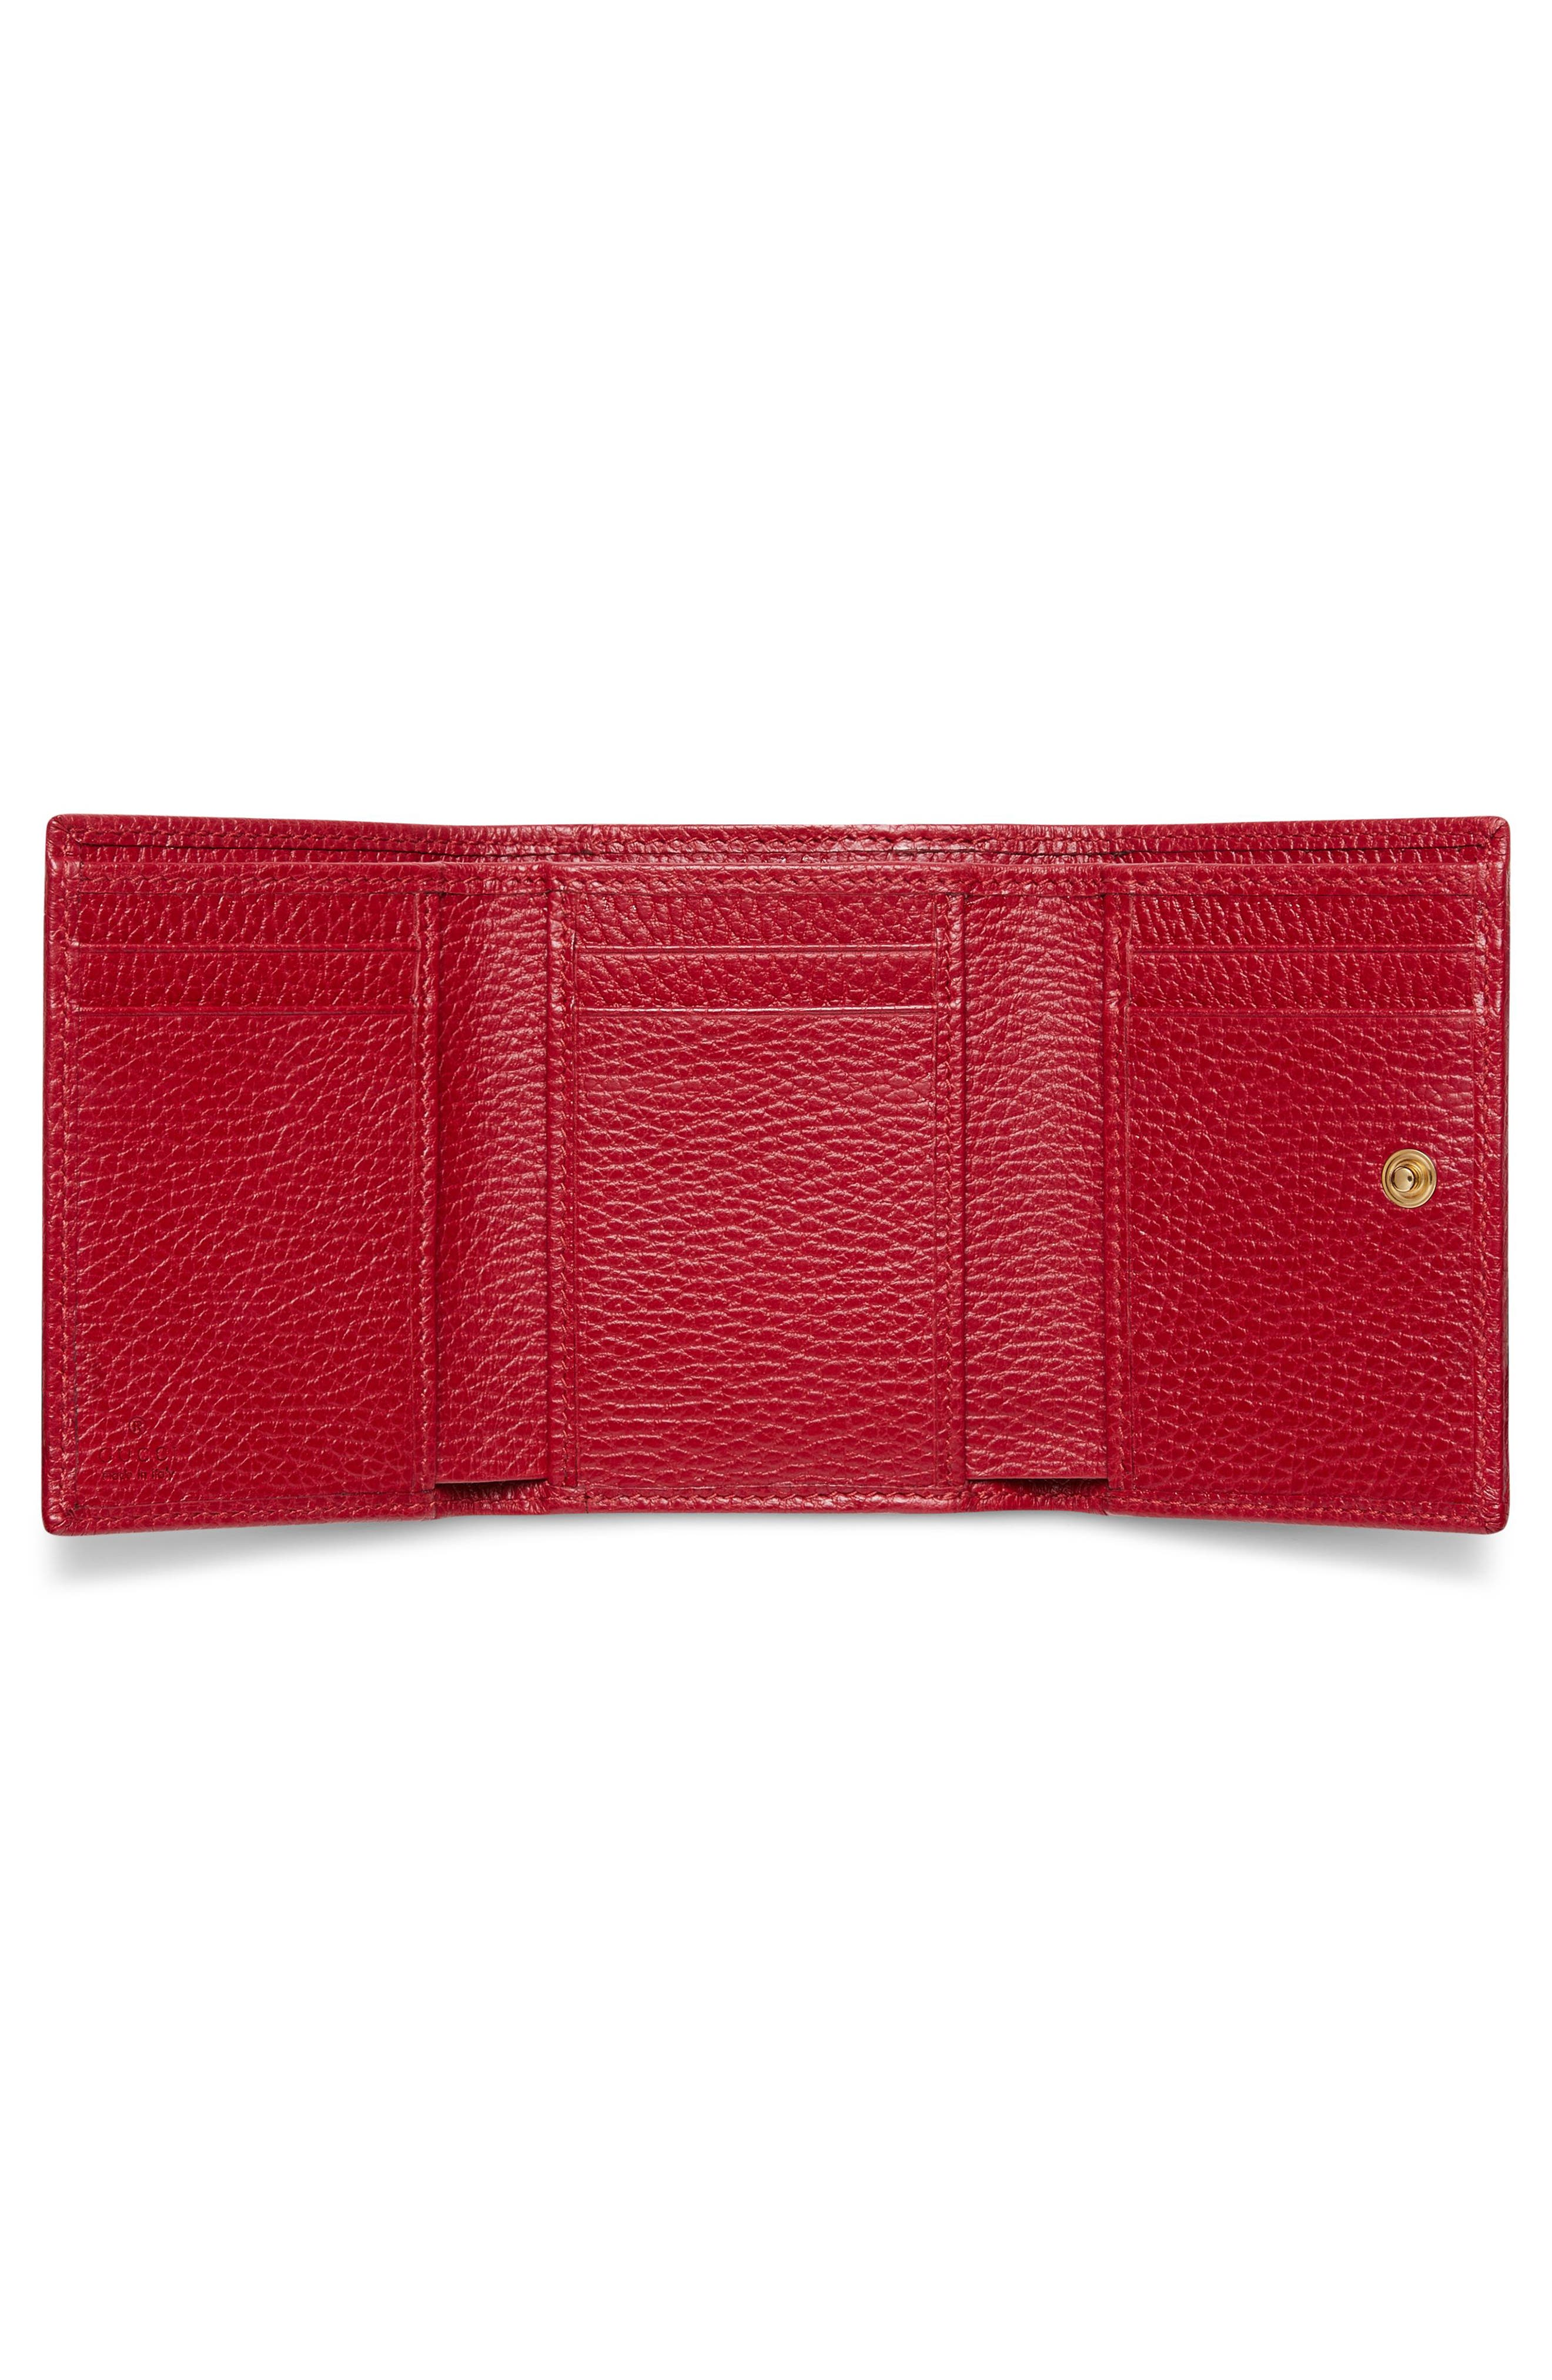 Petite Marmont Leather French Wallet,                             Alternate thumbnail 4, color,